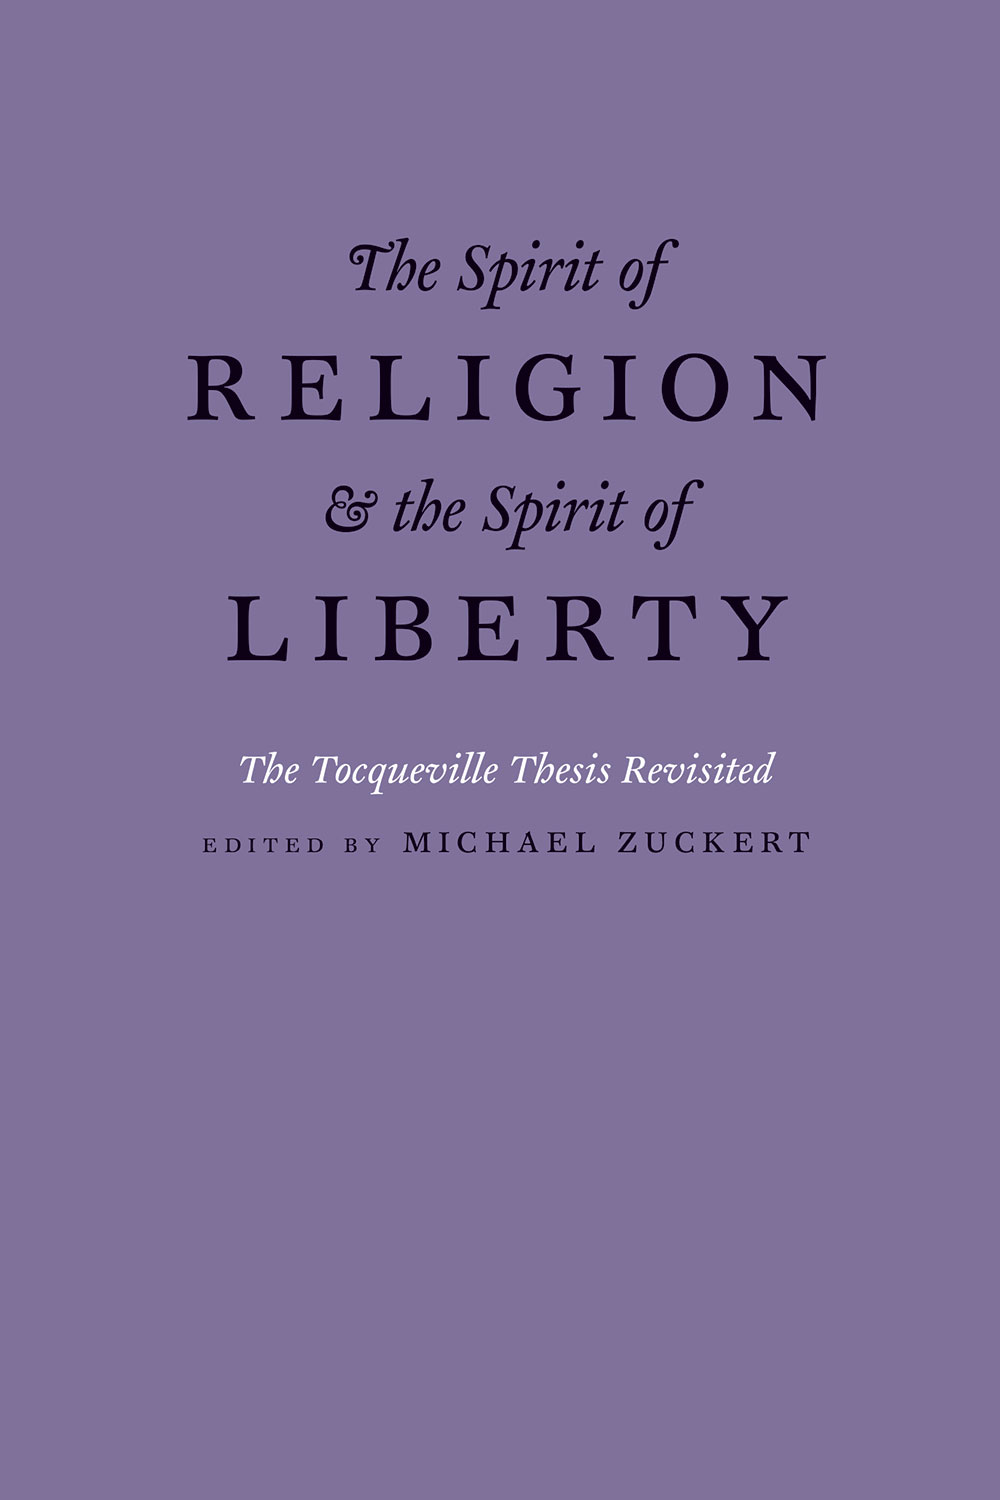 tocqueville thesis Tocqueville's inevitability thesis has prevented many readers from coming to  terms with his central concern, the problem of democracy, by drawing their.